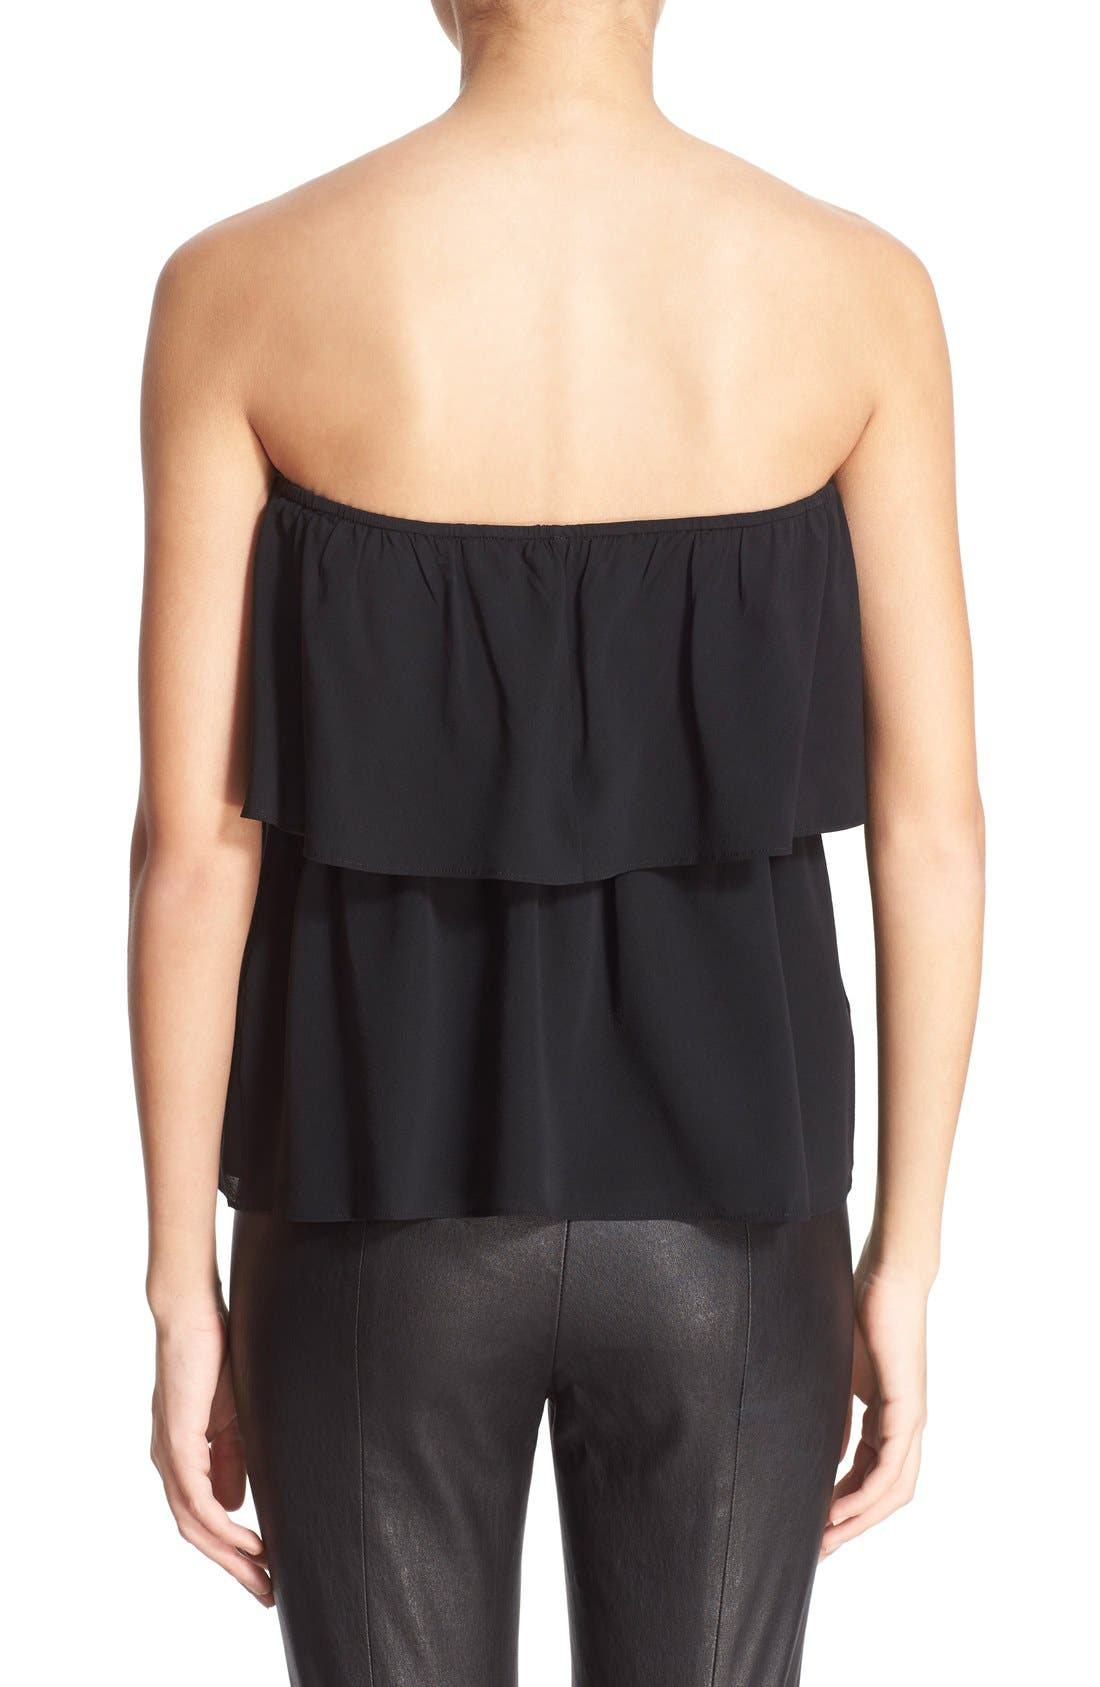 ALICE + OLIVIA,                             'Nadine' Strapless Ruffle Top,                             Alternate thumbnail 5, color,                             001